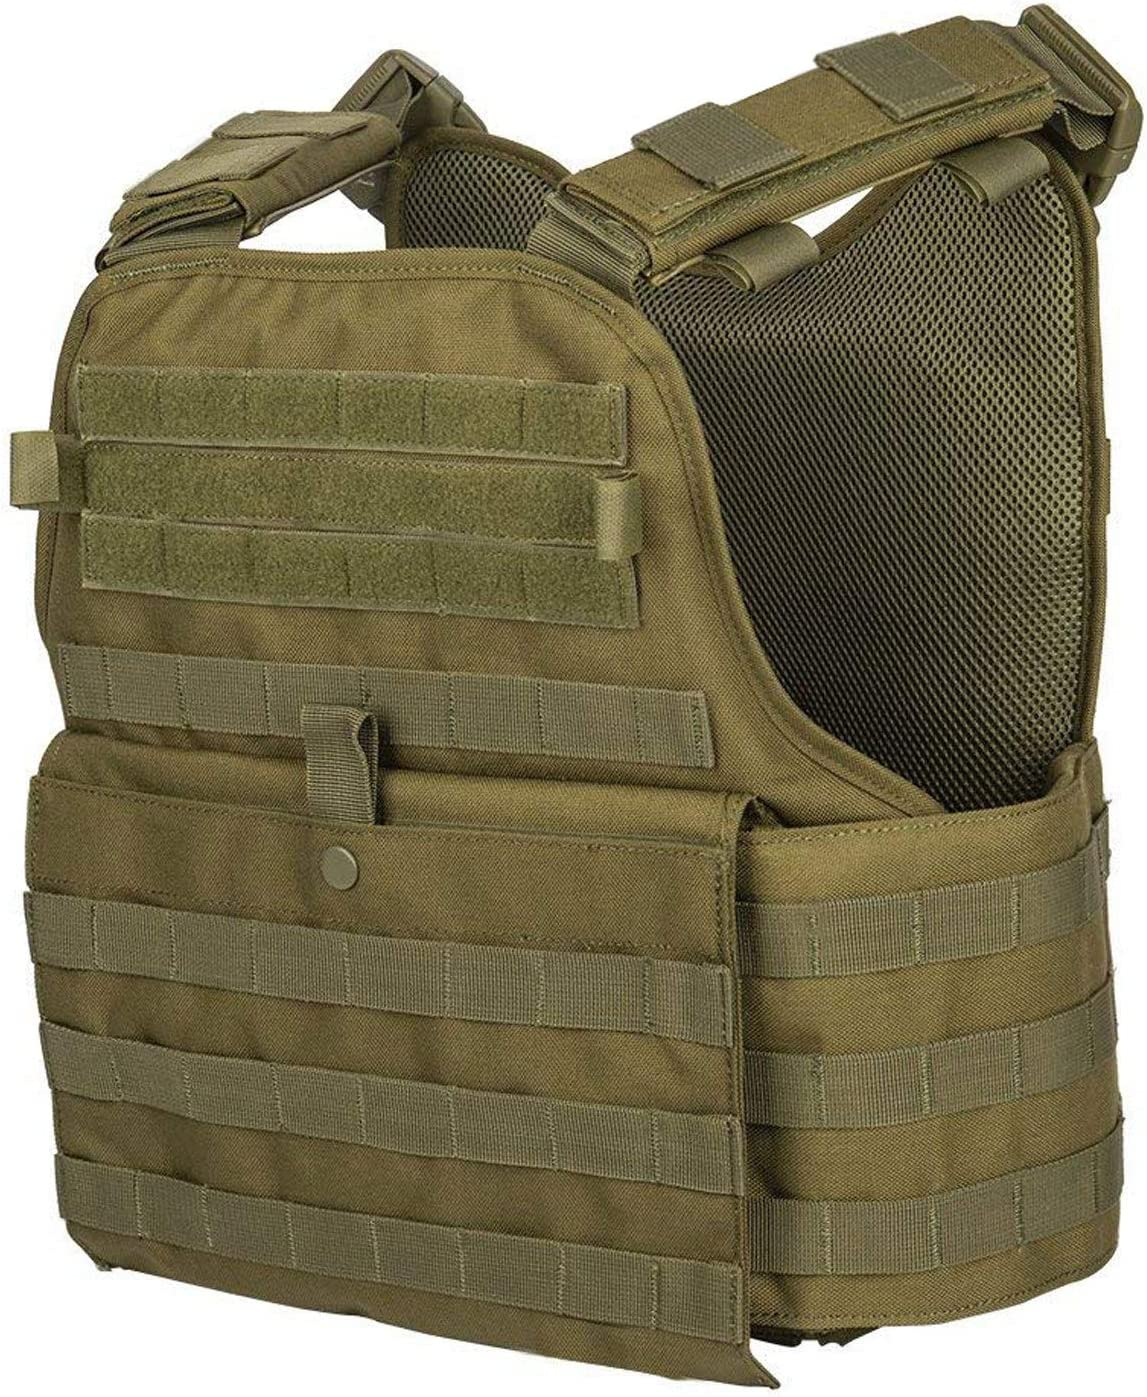 GFIRE Tactical Vest, Breathable Combat Training Vest - Adjustable, lightweight in green color. hook and loop closure